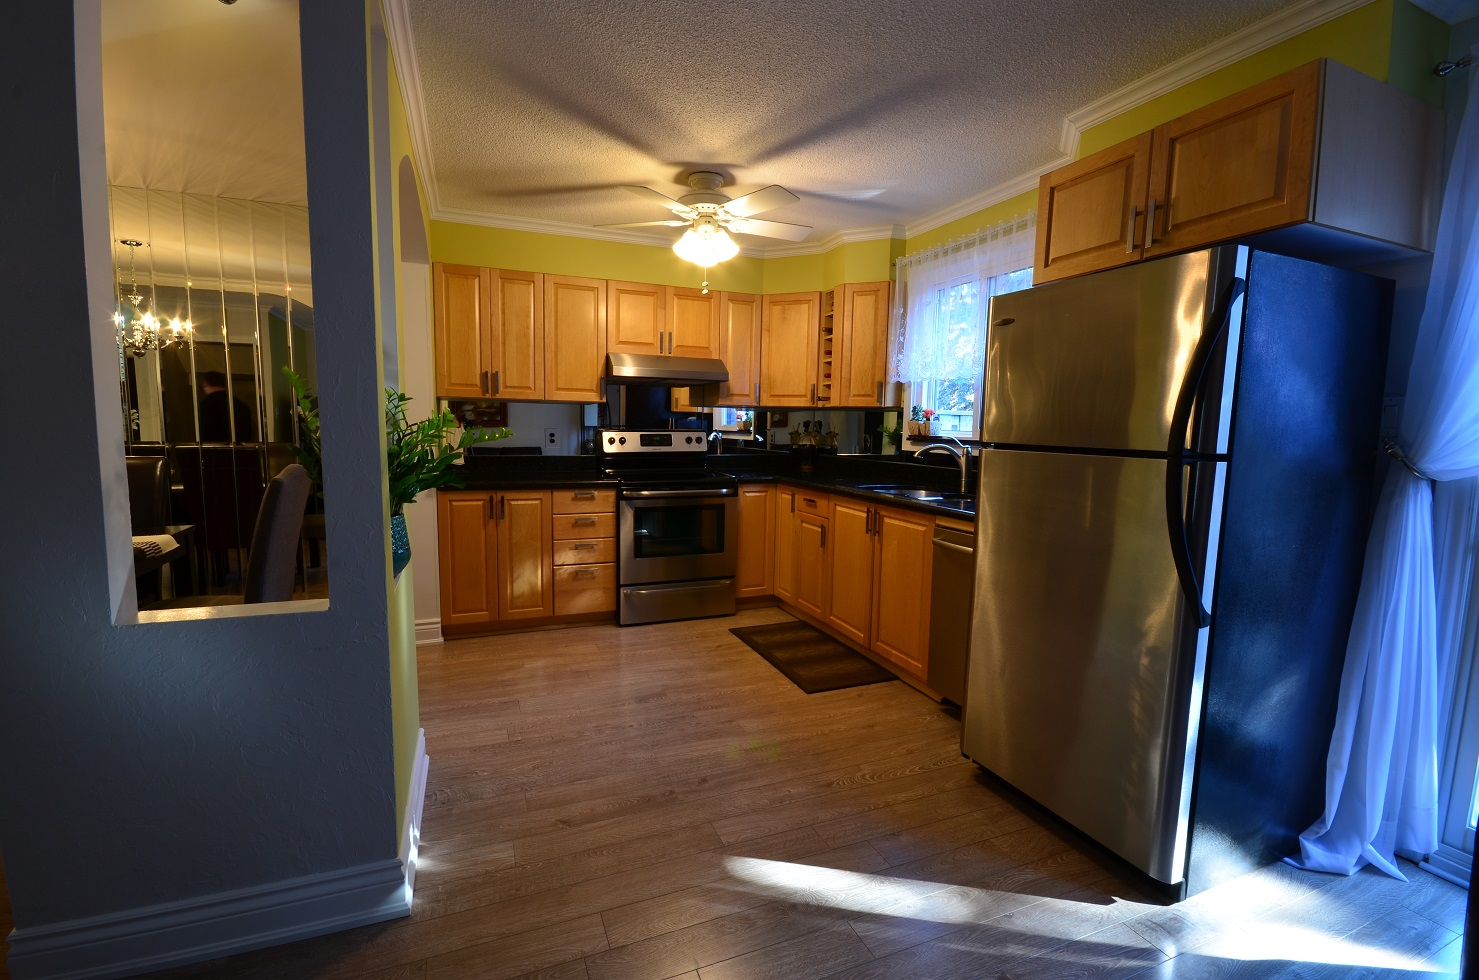 3 Bedroom Townhouse In Mississauga! Renovated Top To Bottom!